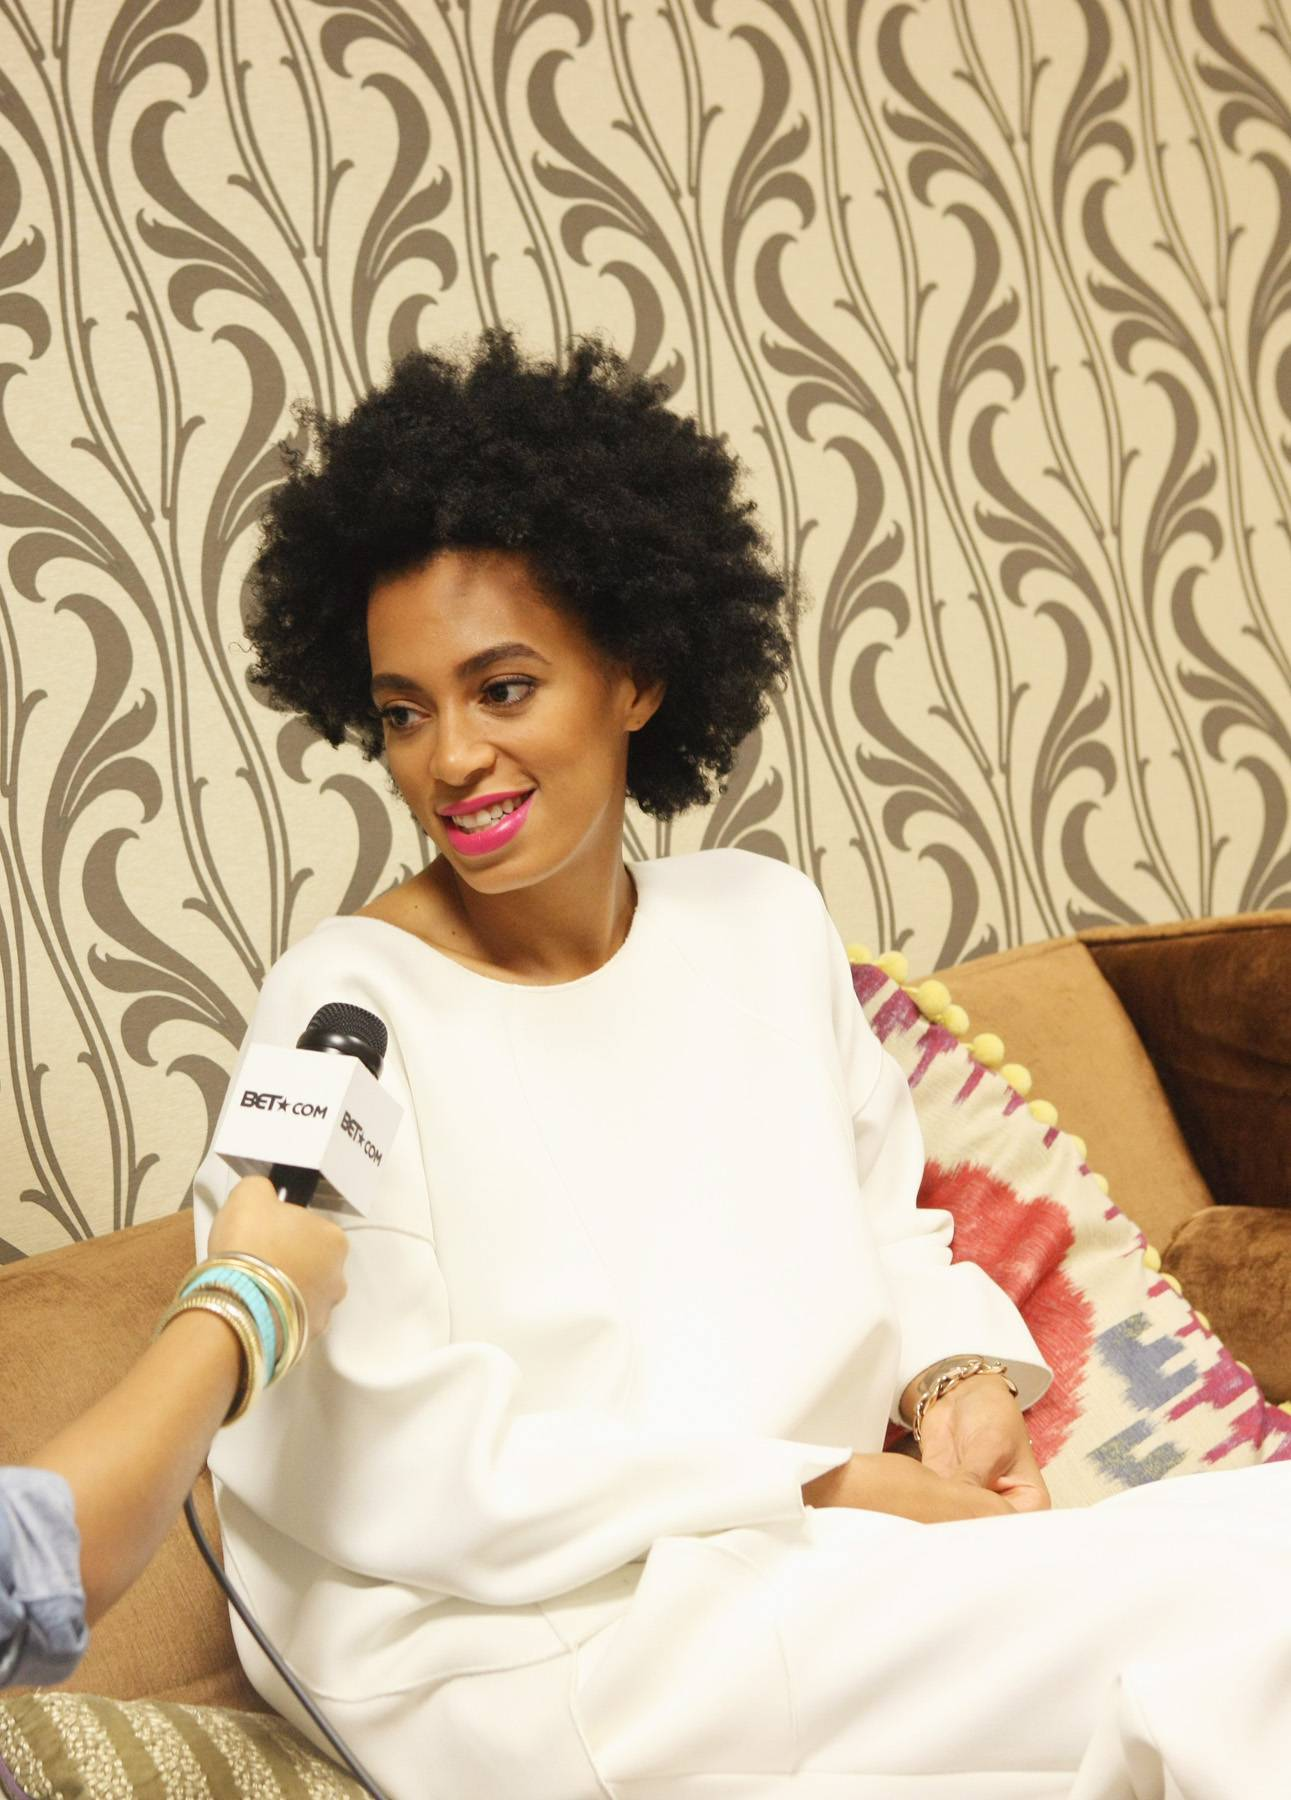 The Truth - Solange Knowles talks new record label with Taj Rani of BET.com(Photo: Bennett Raglin/BET/Getty Images for BET)